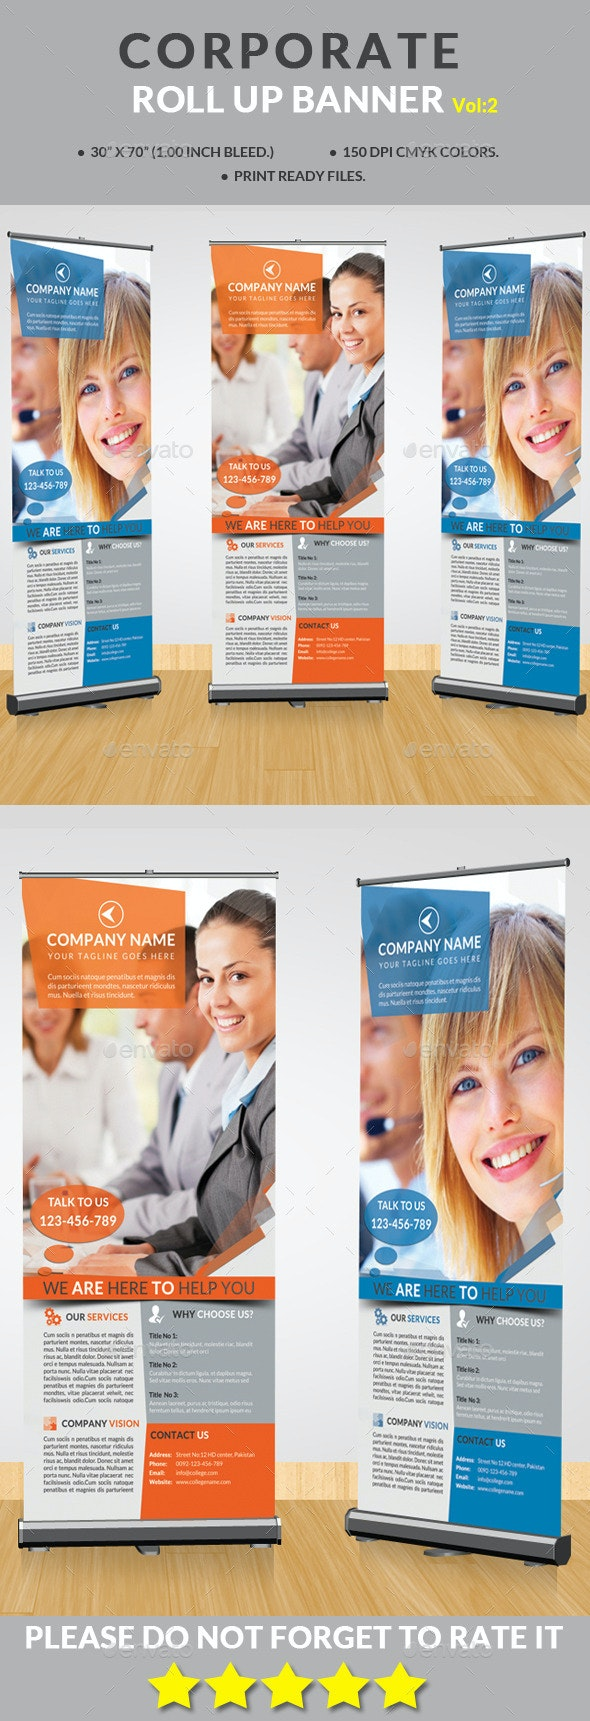 Corporate Roll-up Banner Vol:2